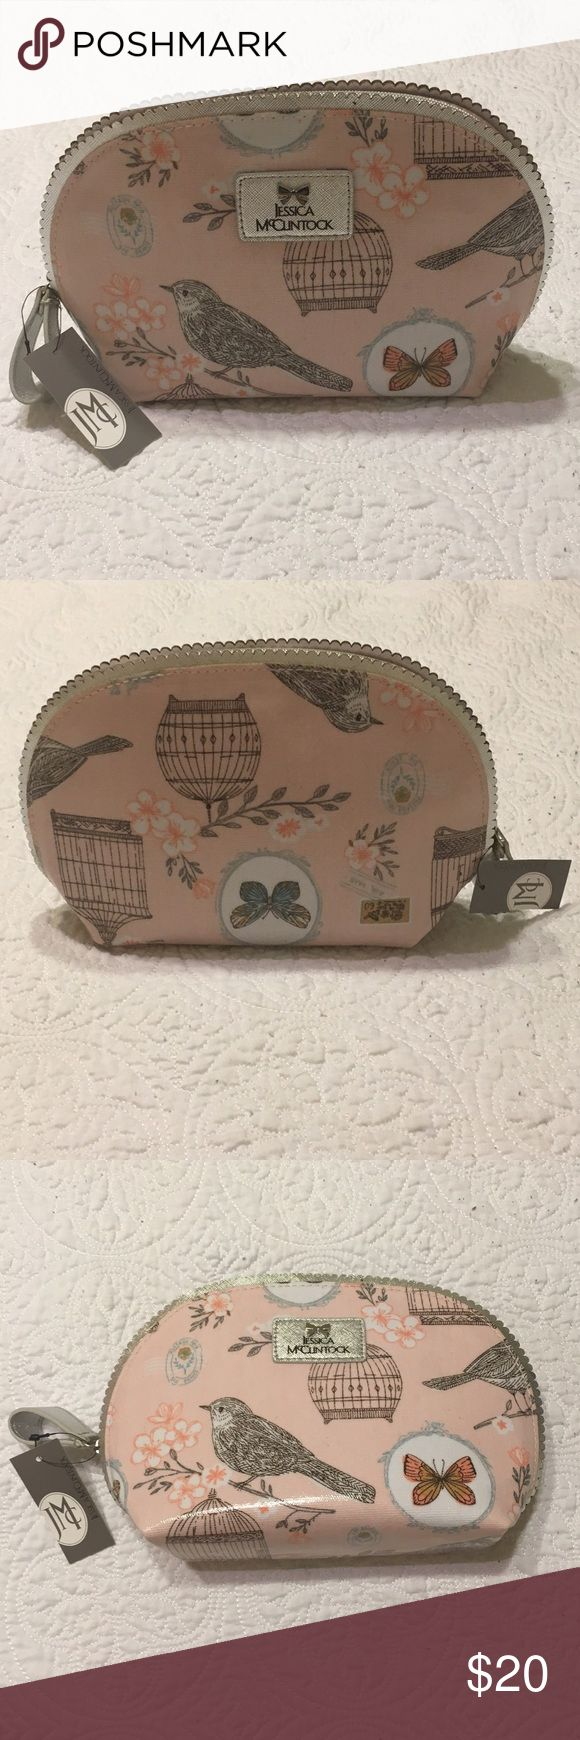 """👛💄NWT Jessica McClintock Cosmetic Bag 💄👛 NWT • Jessica McClintock Cosmetic Bag • Pink/Silver• Bird/Butterfly pattern with scalloped edging • 9""""x6.5""""• Perfect for at home or on the go 🌸 ‼️open to offers ‼️ Jessica McClintock Makeup"""